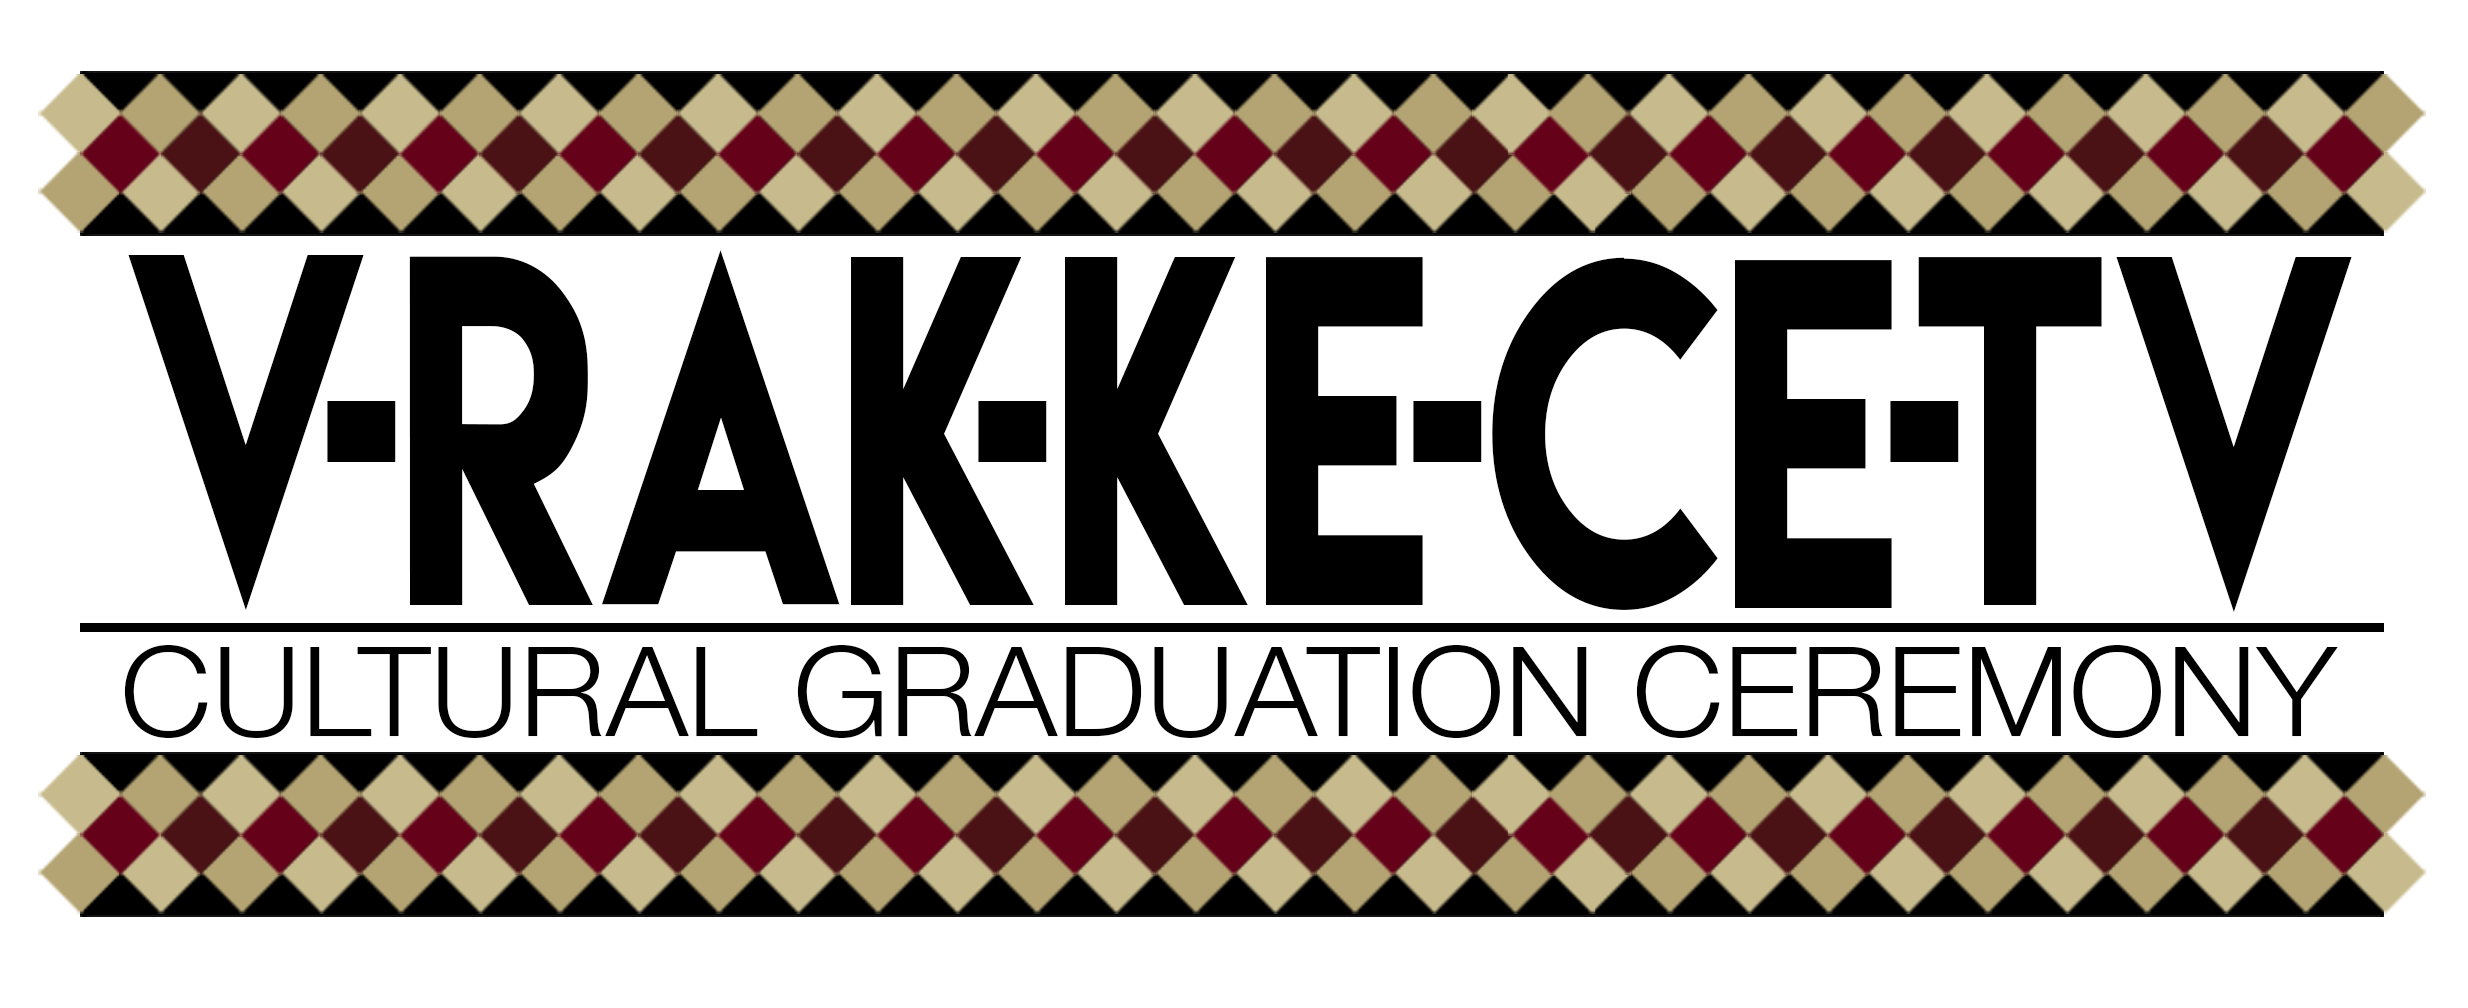 The image is the patchwork design logo for V-rak-ke-ce-tv, the cultural graduation ceremony hosted by the Center.